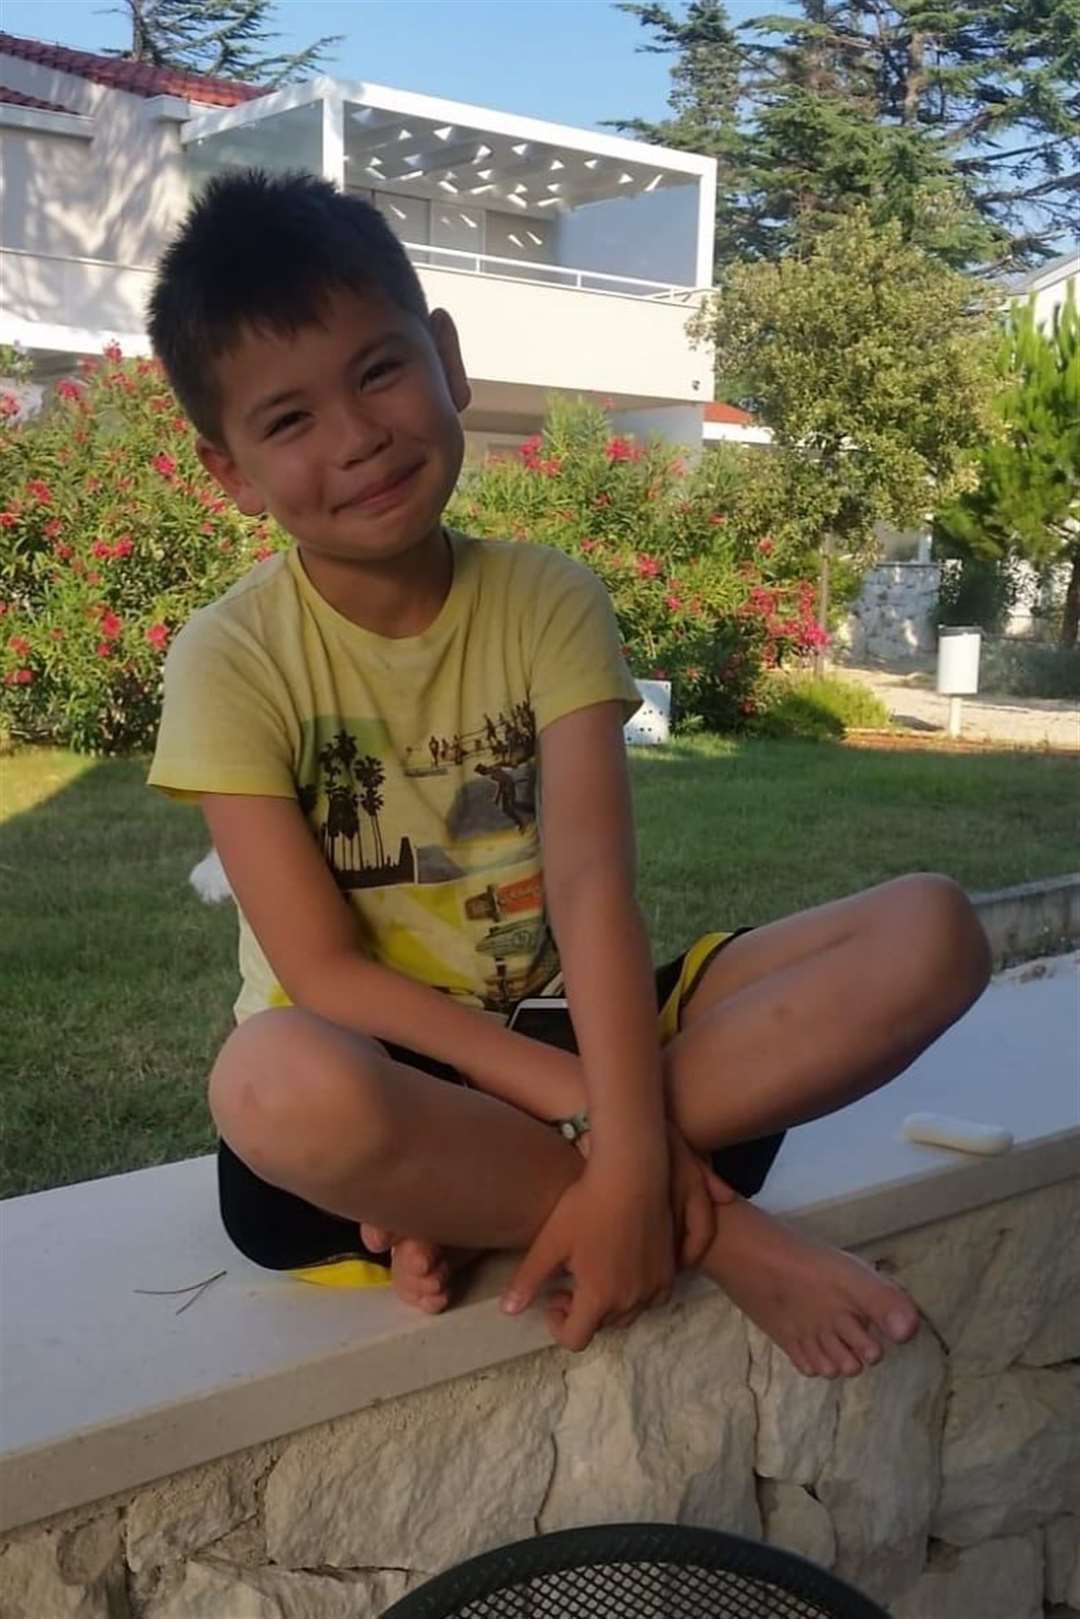 10-year-old Daniel Bennett died in hospital on Sunday (March 29), a week after the collision (33149775)